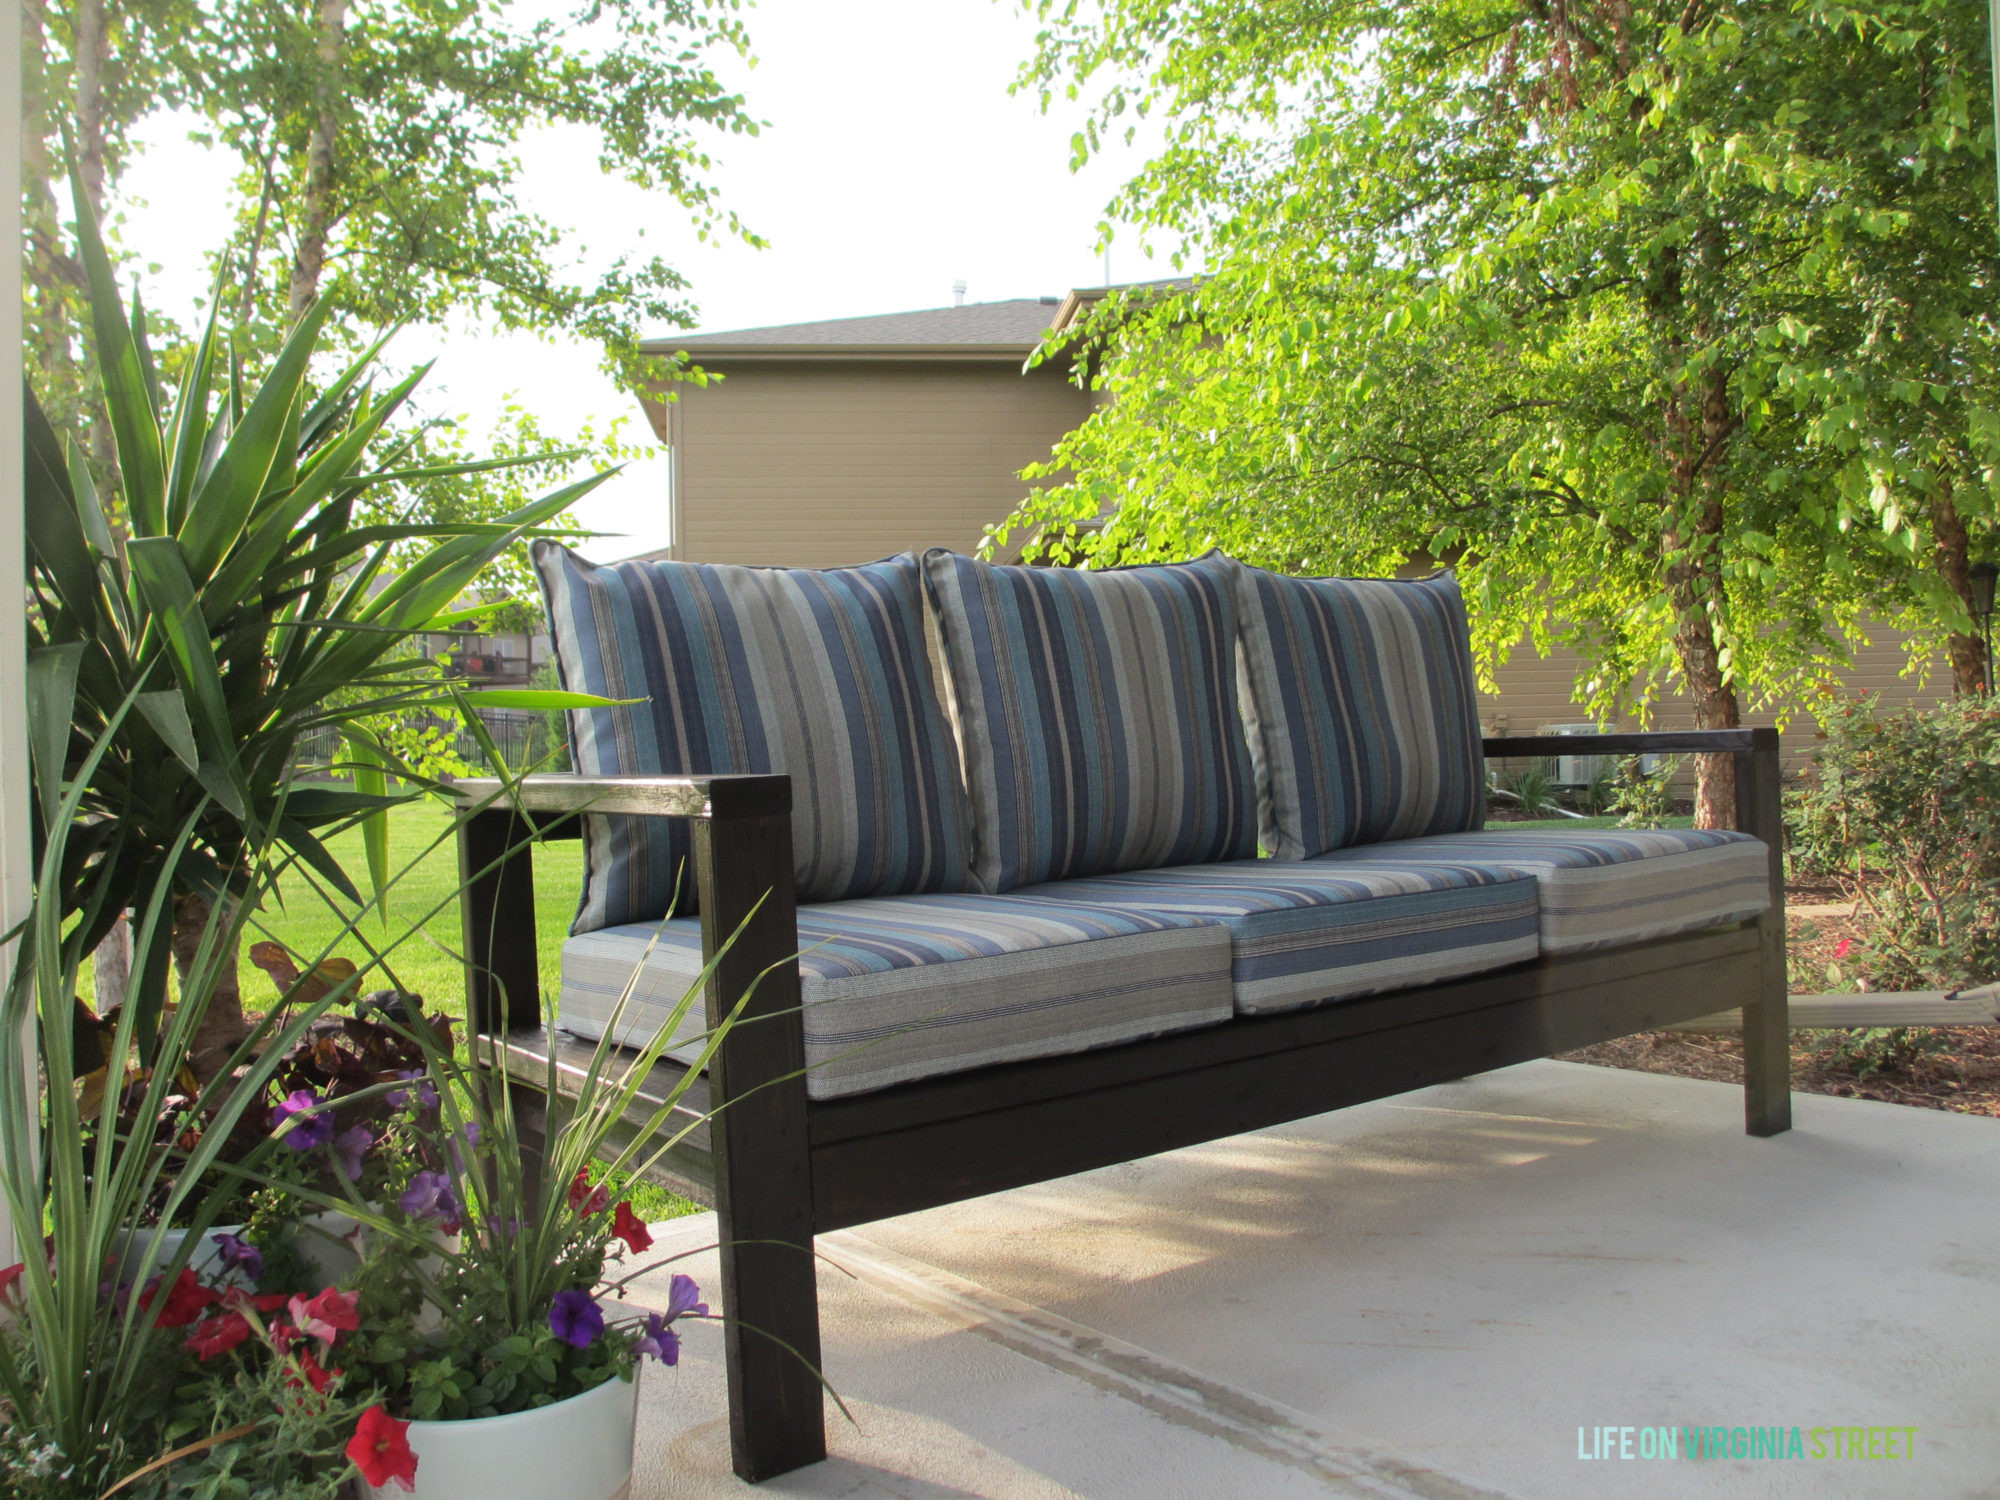 1583874638 716 The Best Ideas for Outdoor sofa Diy – Home Family Style and Art Ideas